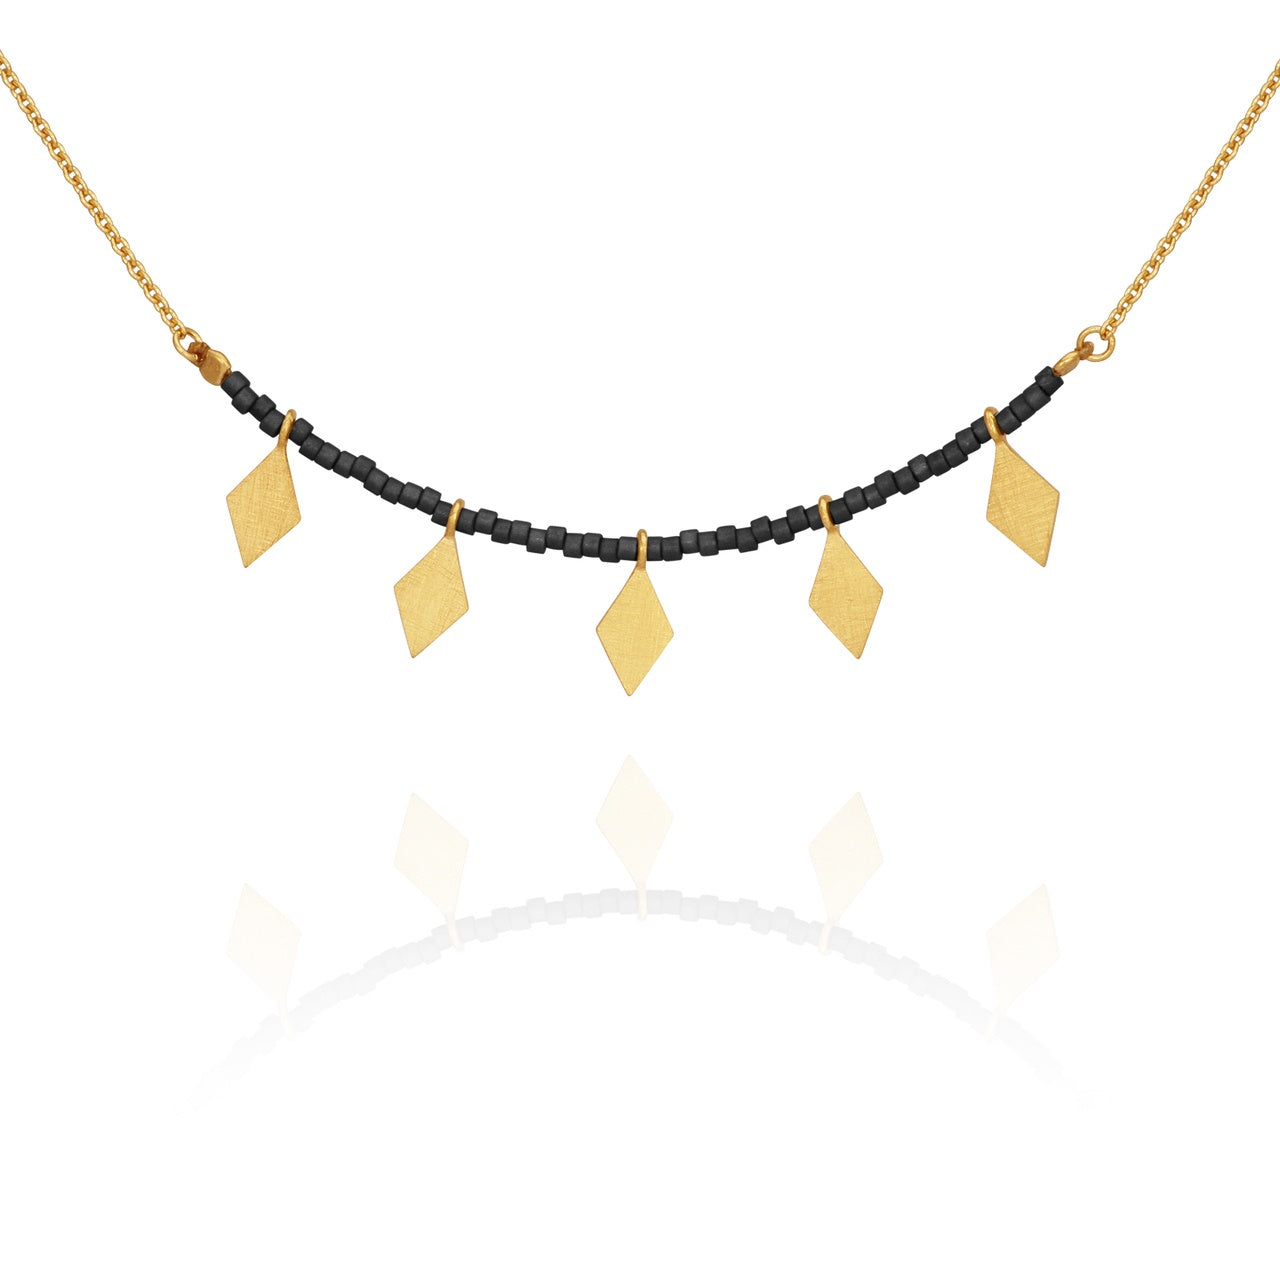 Calli Seed Bead Necklace Black Gold - The Artisan Storeroom